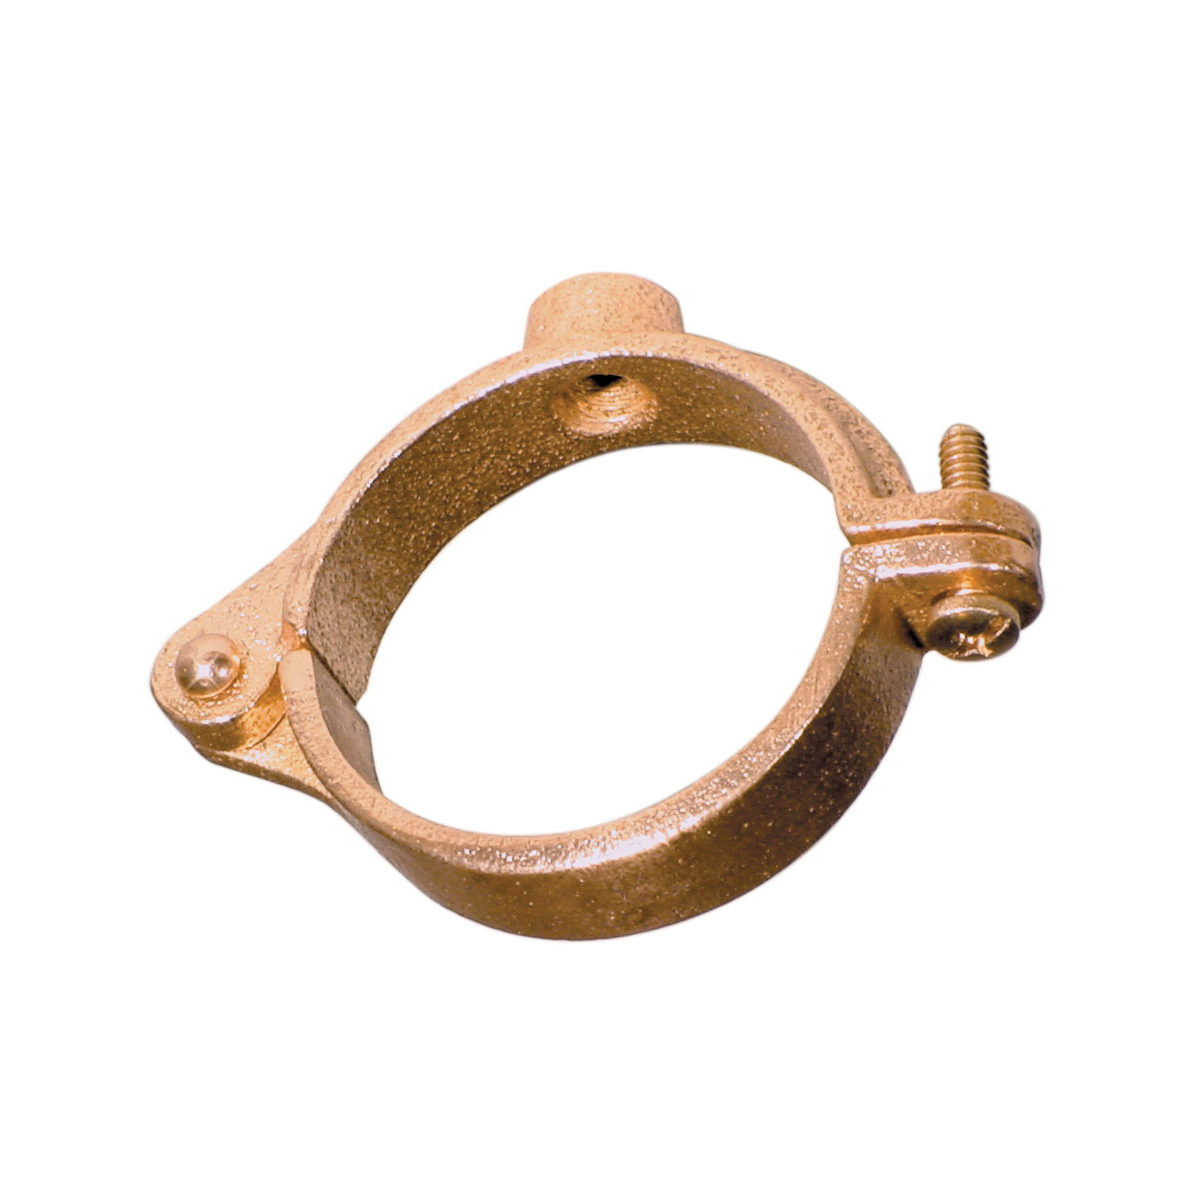 SPF/Anvil™ 0560018913 FIG CT-138R Extension Split Tube Clamp, 3/4 in Pipe/Tube, 180 lb Load, Malleable Iron, Copper Plated, Import